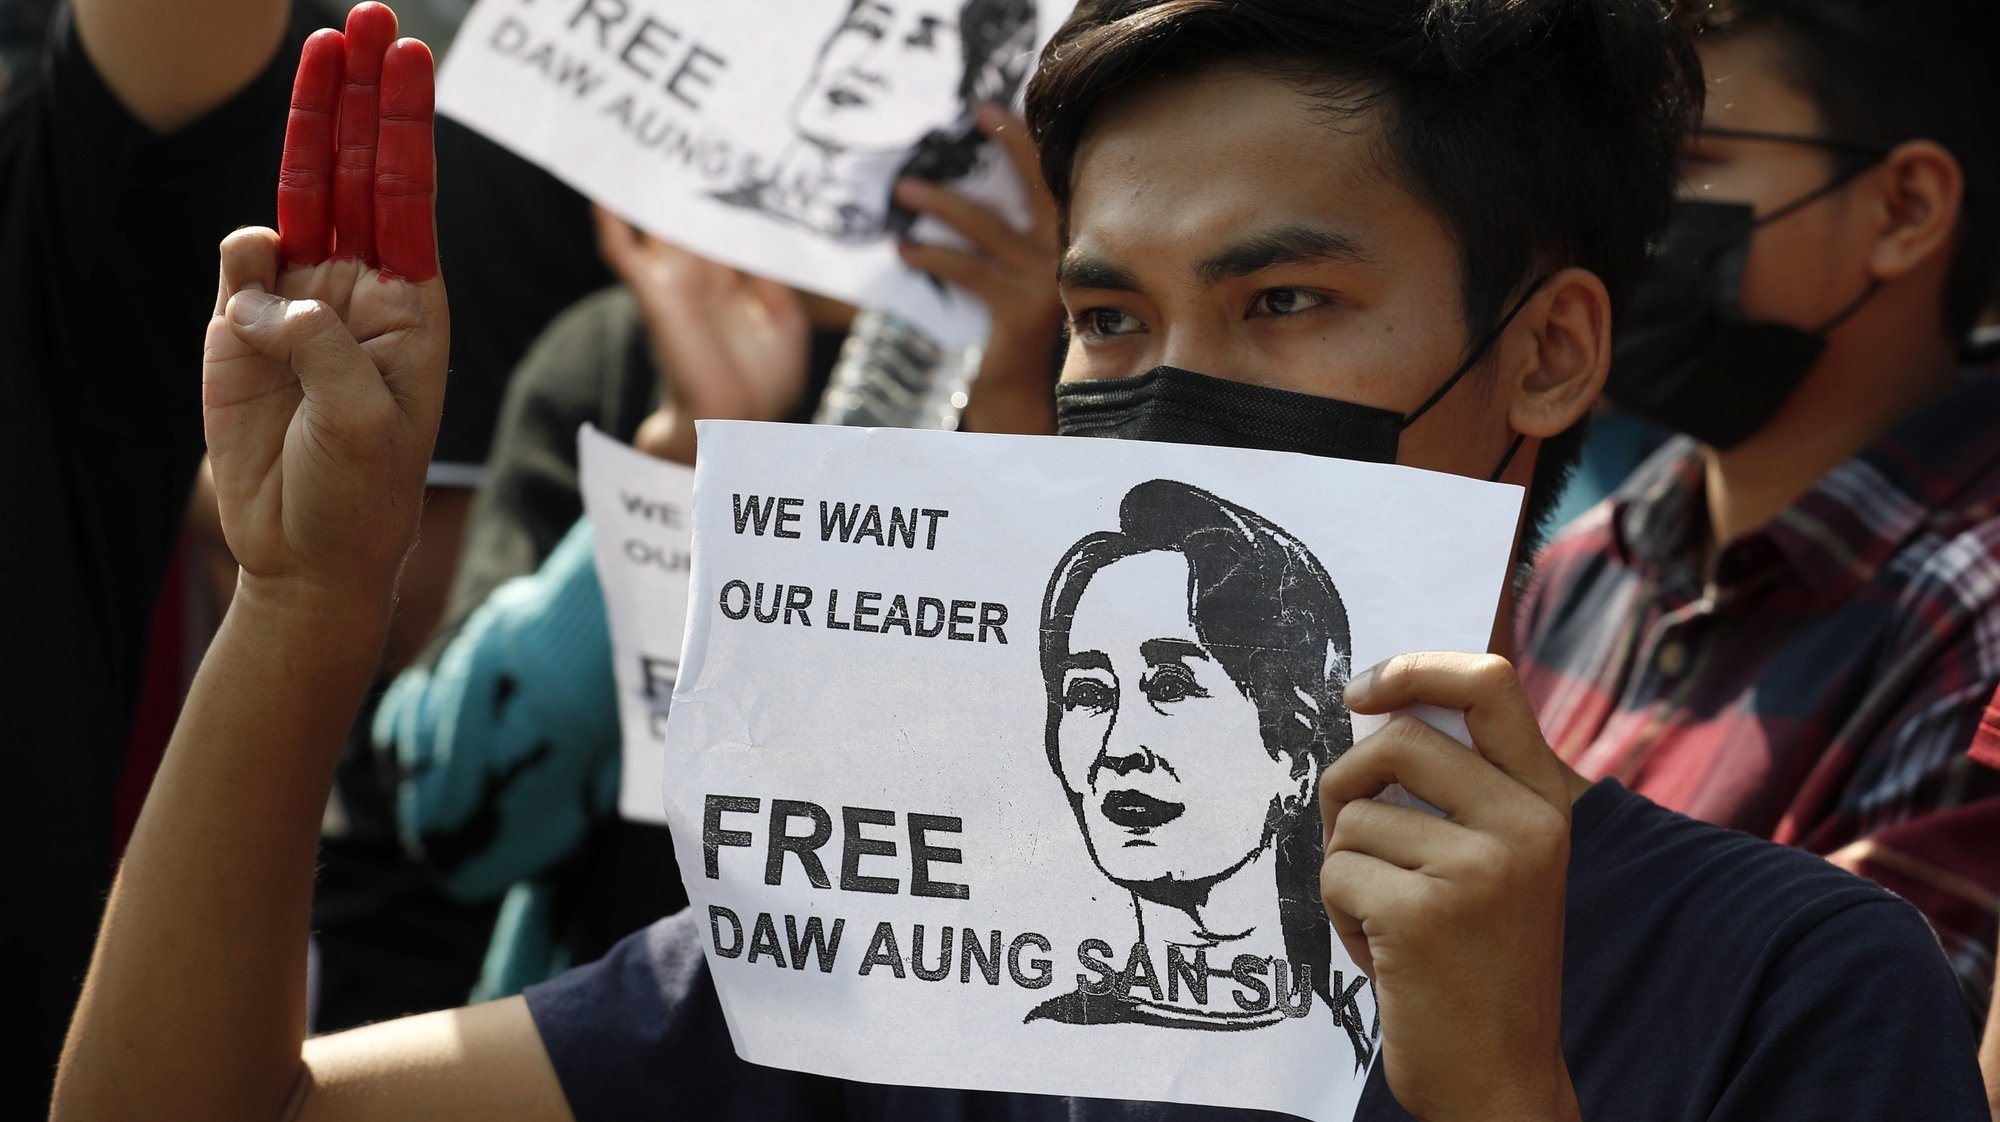 epa08993326 Protesters hold portraits of detained Myanmar State Counselor Aung San Suu Kyi reading 'We Want Our Leader Free' and flash the three-finger salute, a symbol of resistance, during a protest against the military coup in Yangon, Myanmar, 07 February 2021. Thousands of people took to the streets of Yangon, Myanmar's biggest city, for a second day of mass protests against the military coup amid internet shut down imposed by military rulers. Myanmar's military seized power and declared a state of emergency for one year after arresting State Counselor Aung San Suu Kyi and Myanmar president Win Myint in an early morning raid on 01 February.  EPA/NYEIN CHAN NAING